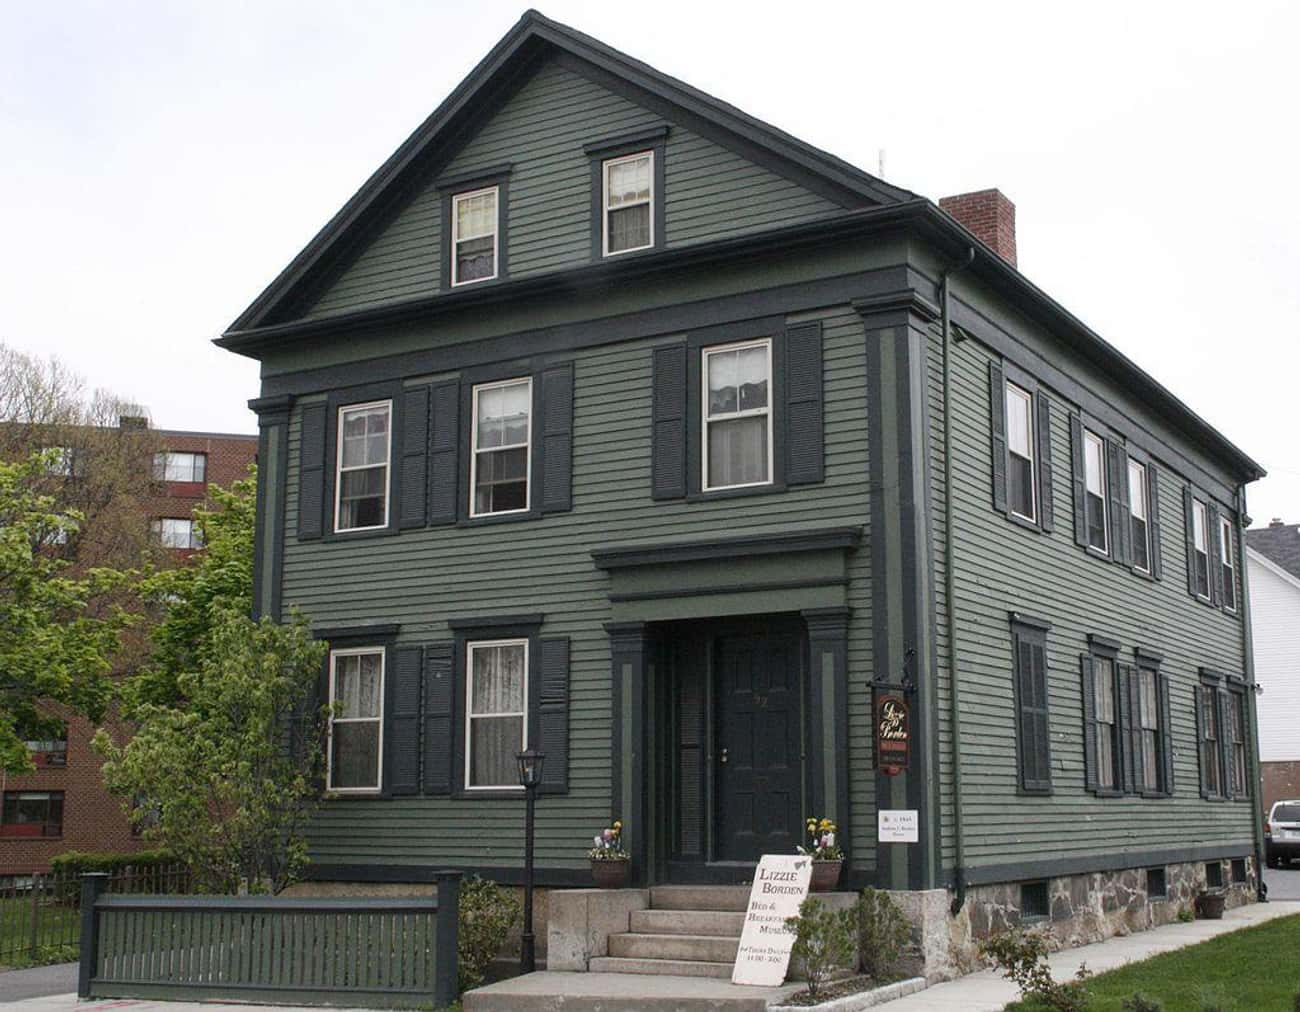 The Spirit Of Abby Borden Can Be Heard Weeping At The Lizzie Borden Bed-And-Breakfast In Fall River, MA